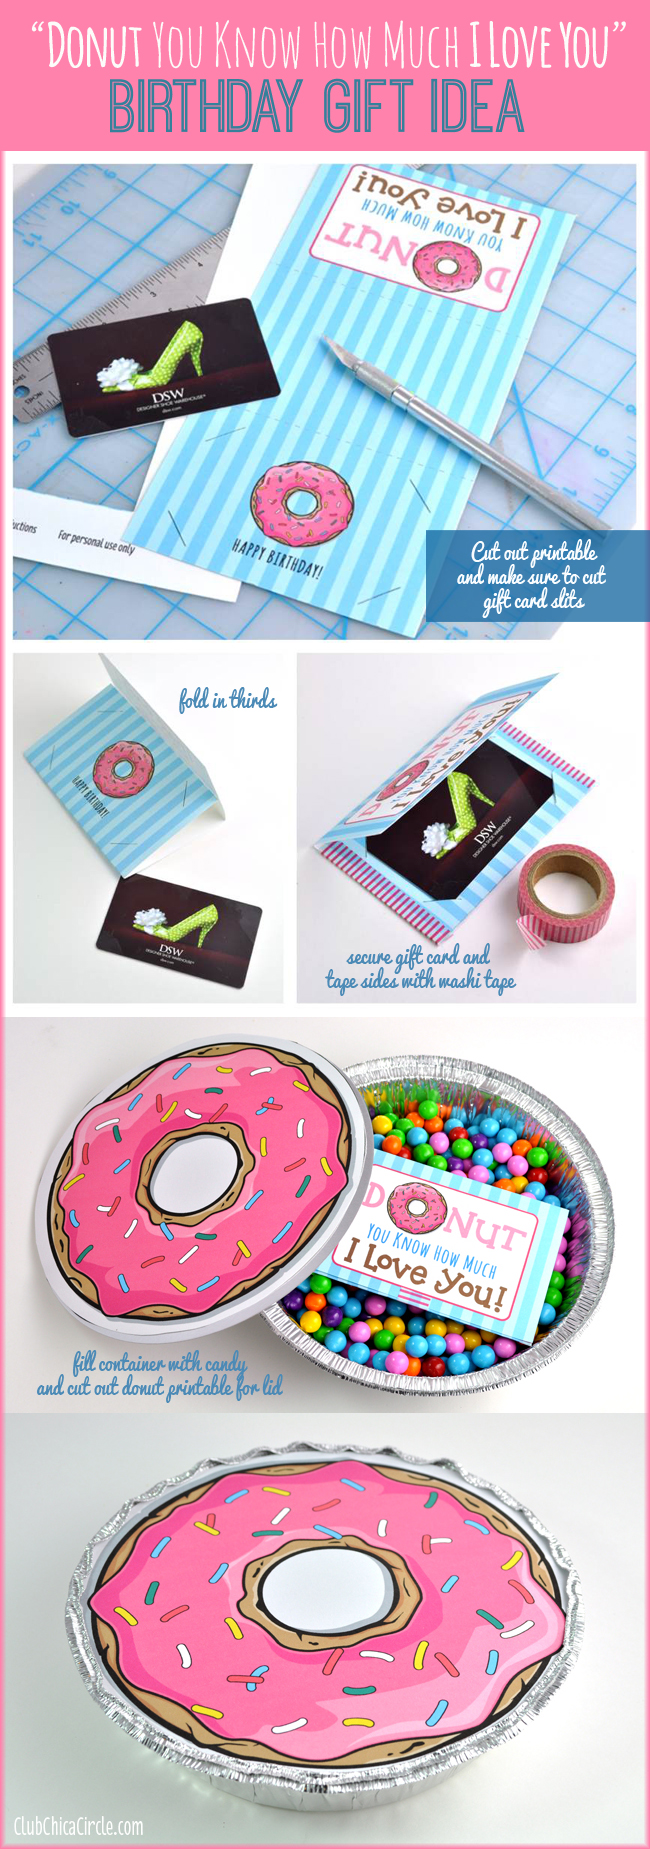 quot;DONUT You Know How Much I Love Youquot; Birthday Gift Idea